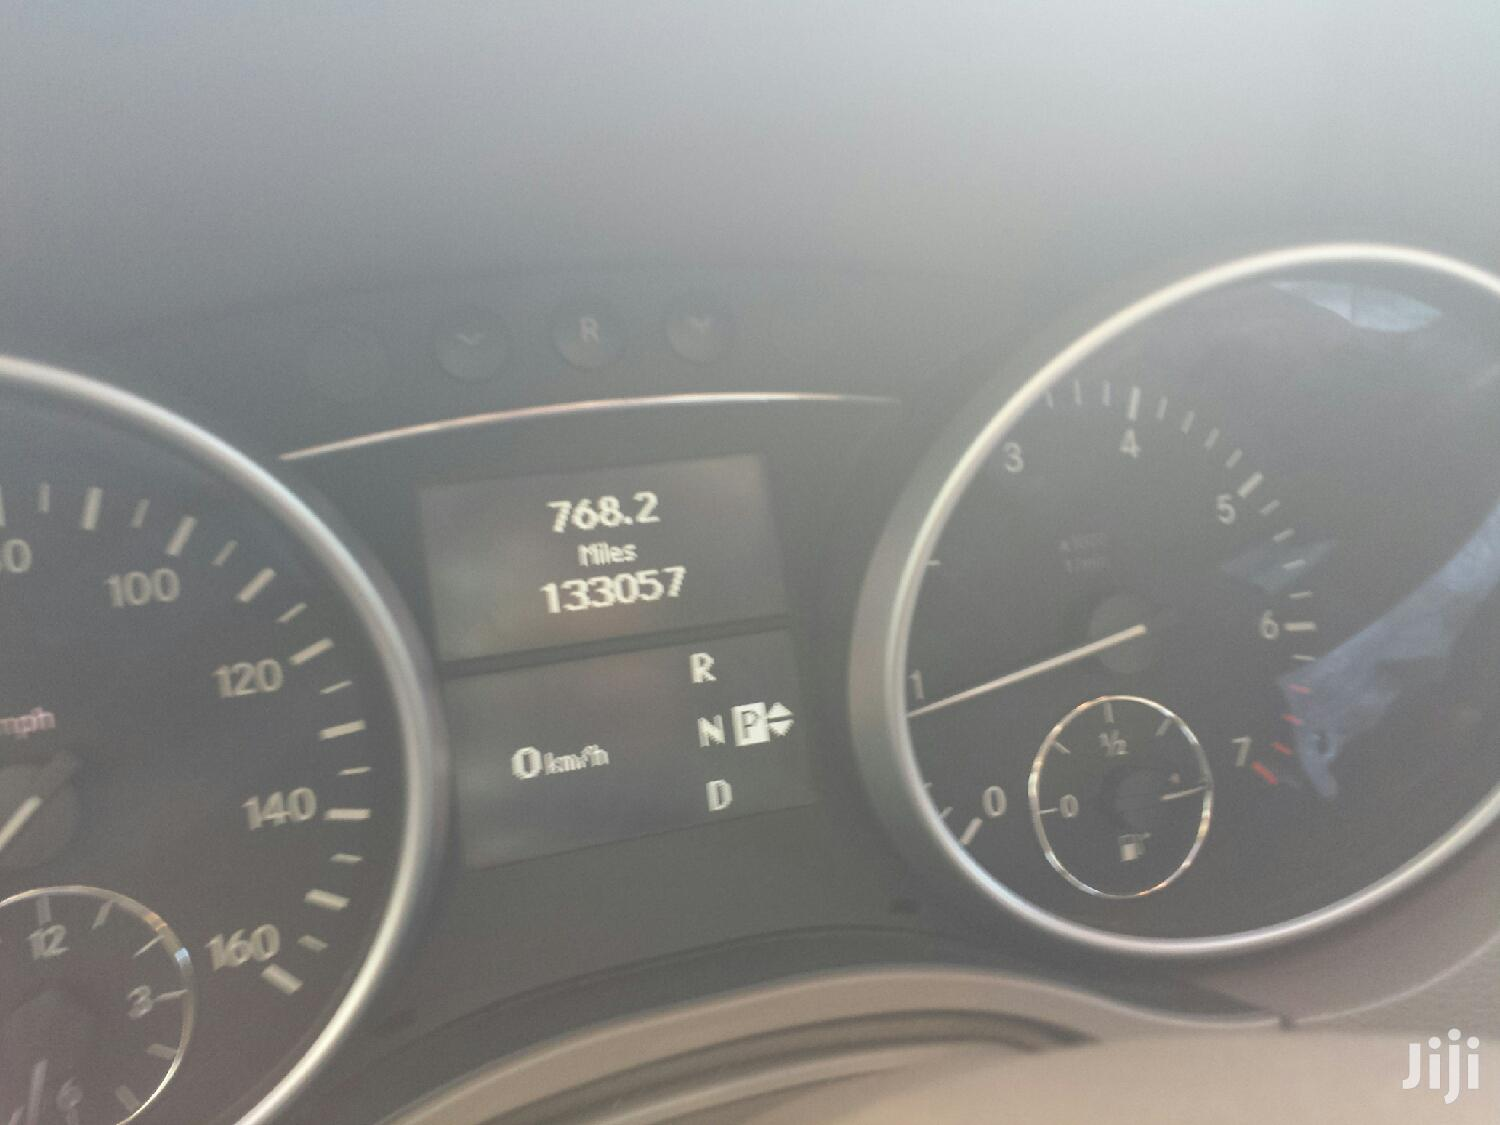 Mercedes-Benz M Class 2010 Black   Cars for sale in Ga South Municipal, Greater Accra, Ghana